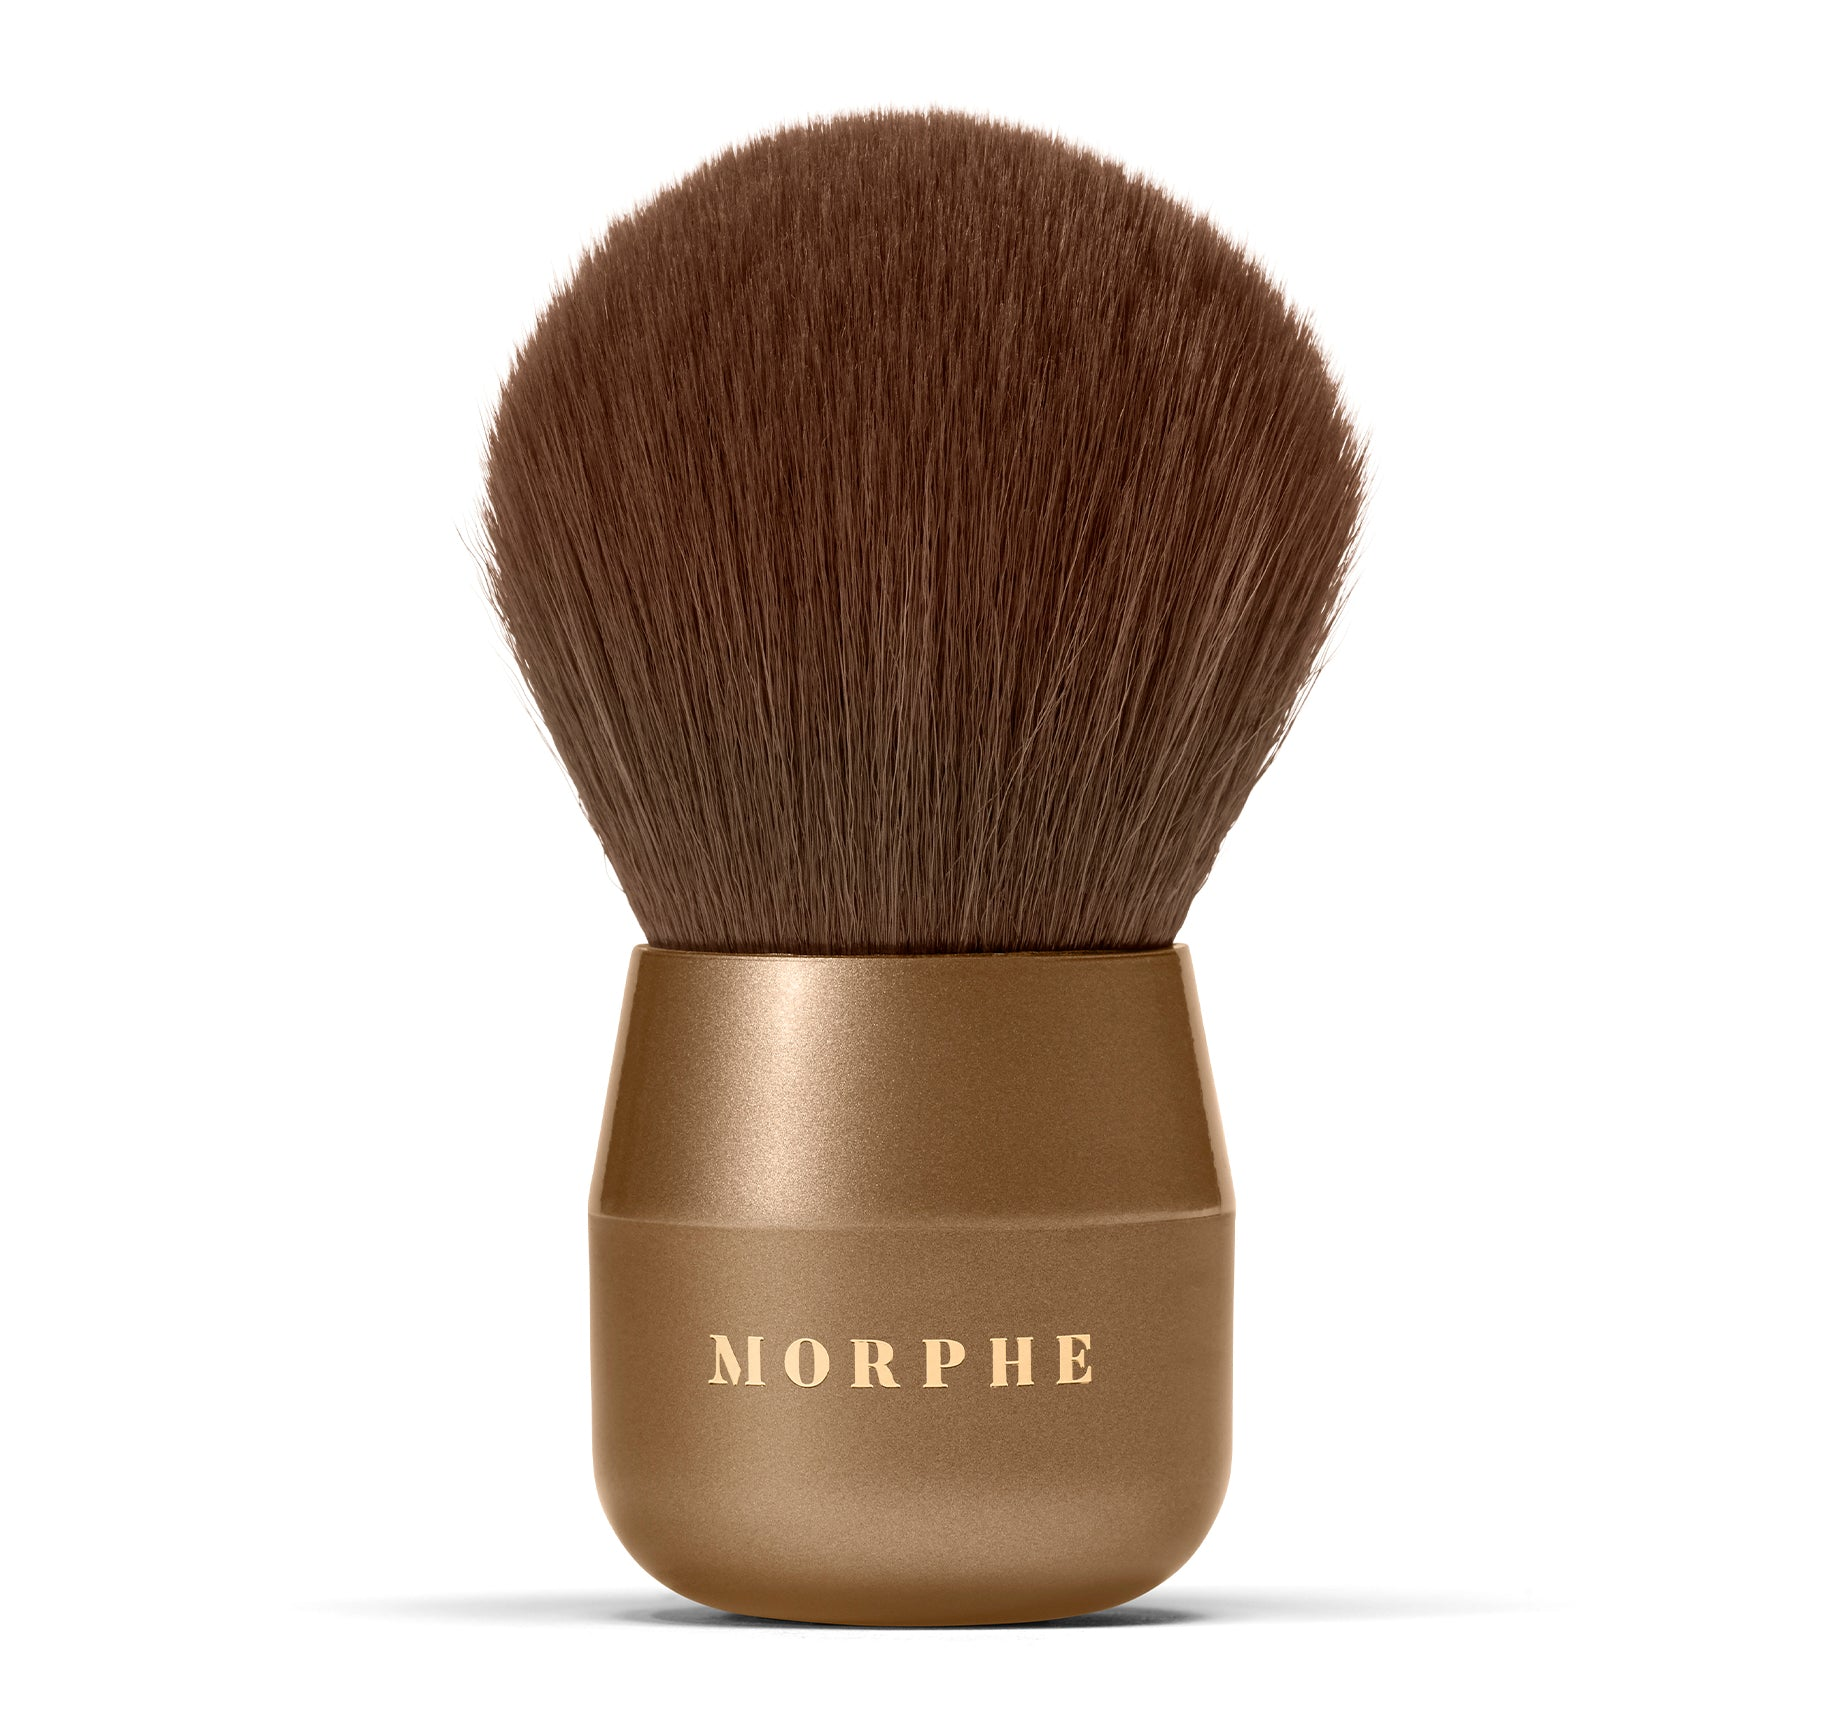 GLAMABRONZE DELUXE FACE & BODY BRONZER BRUSH, view larger image